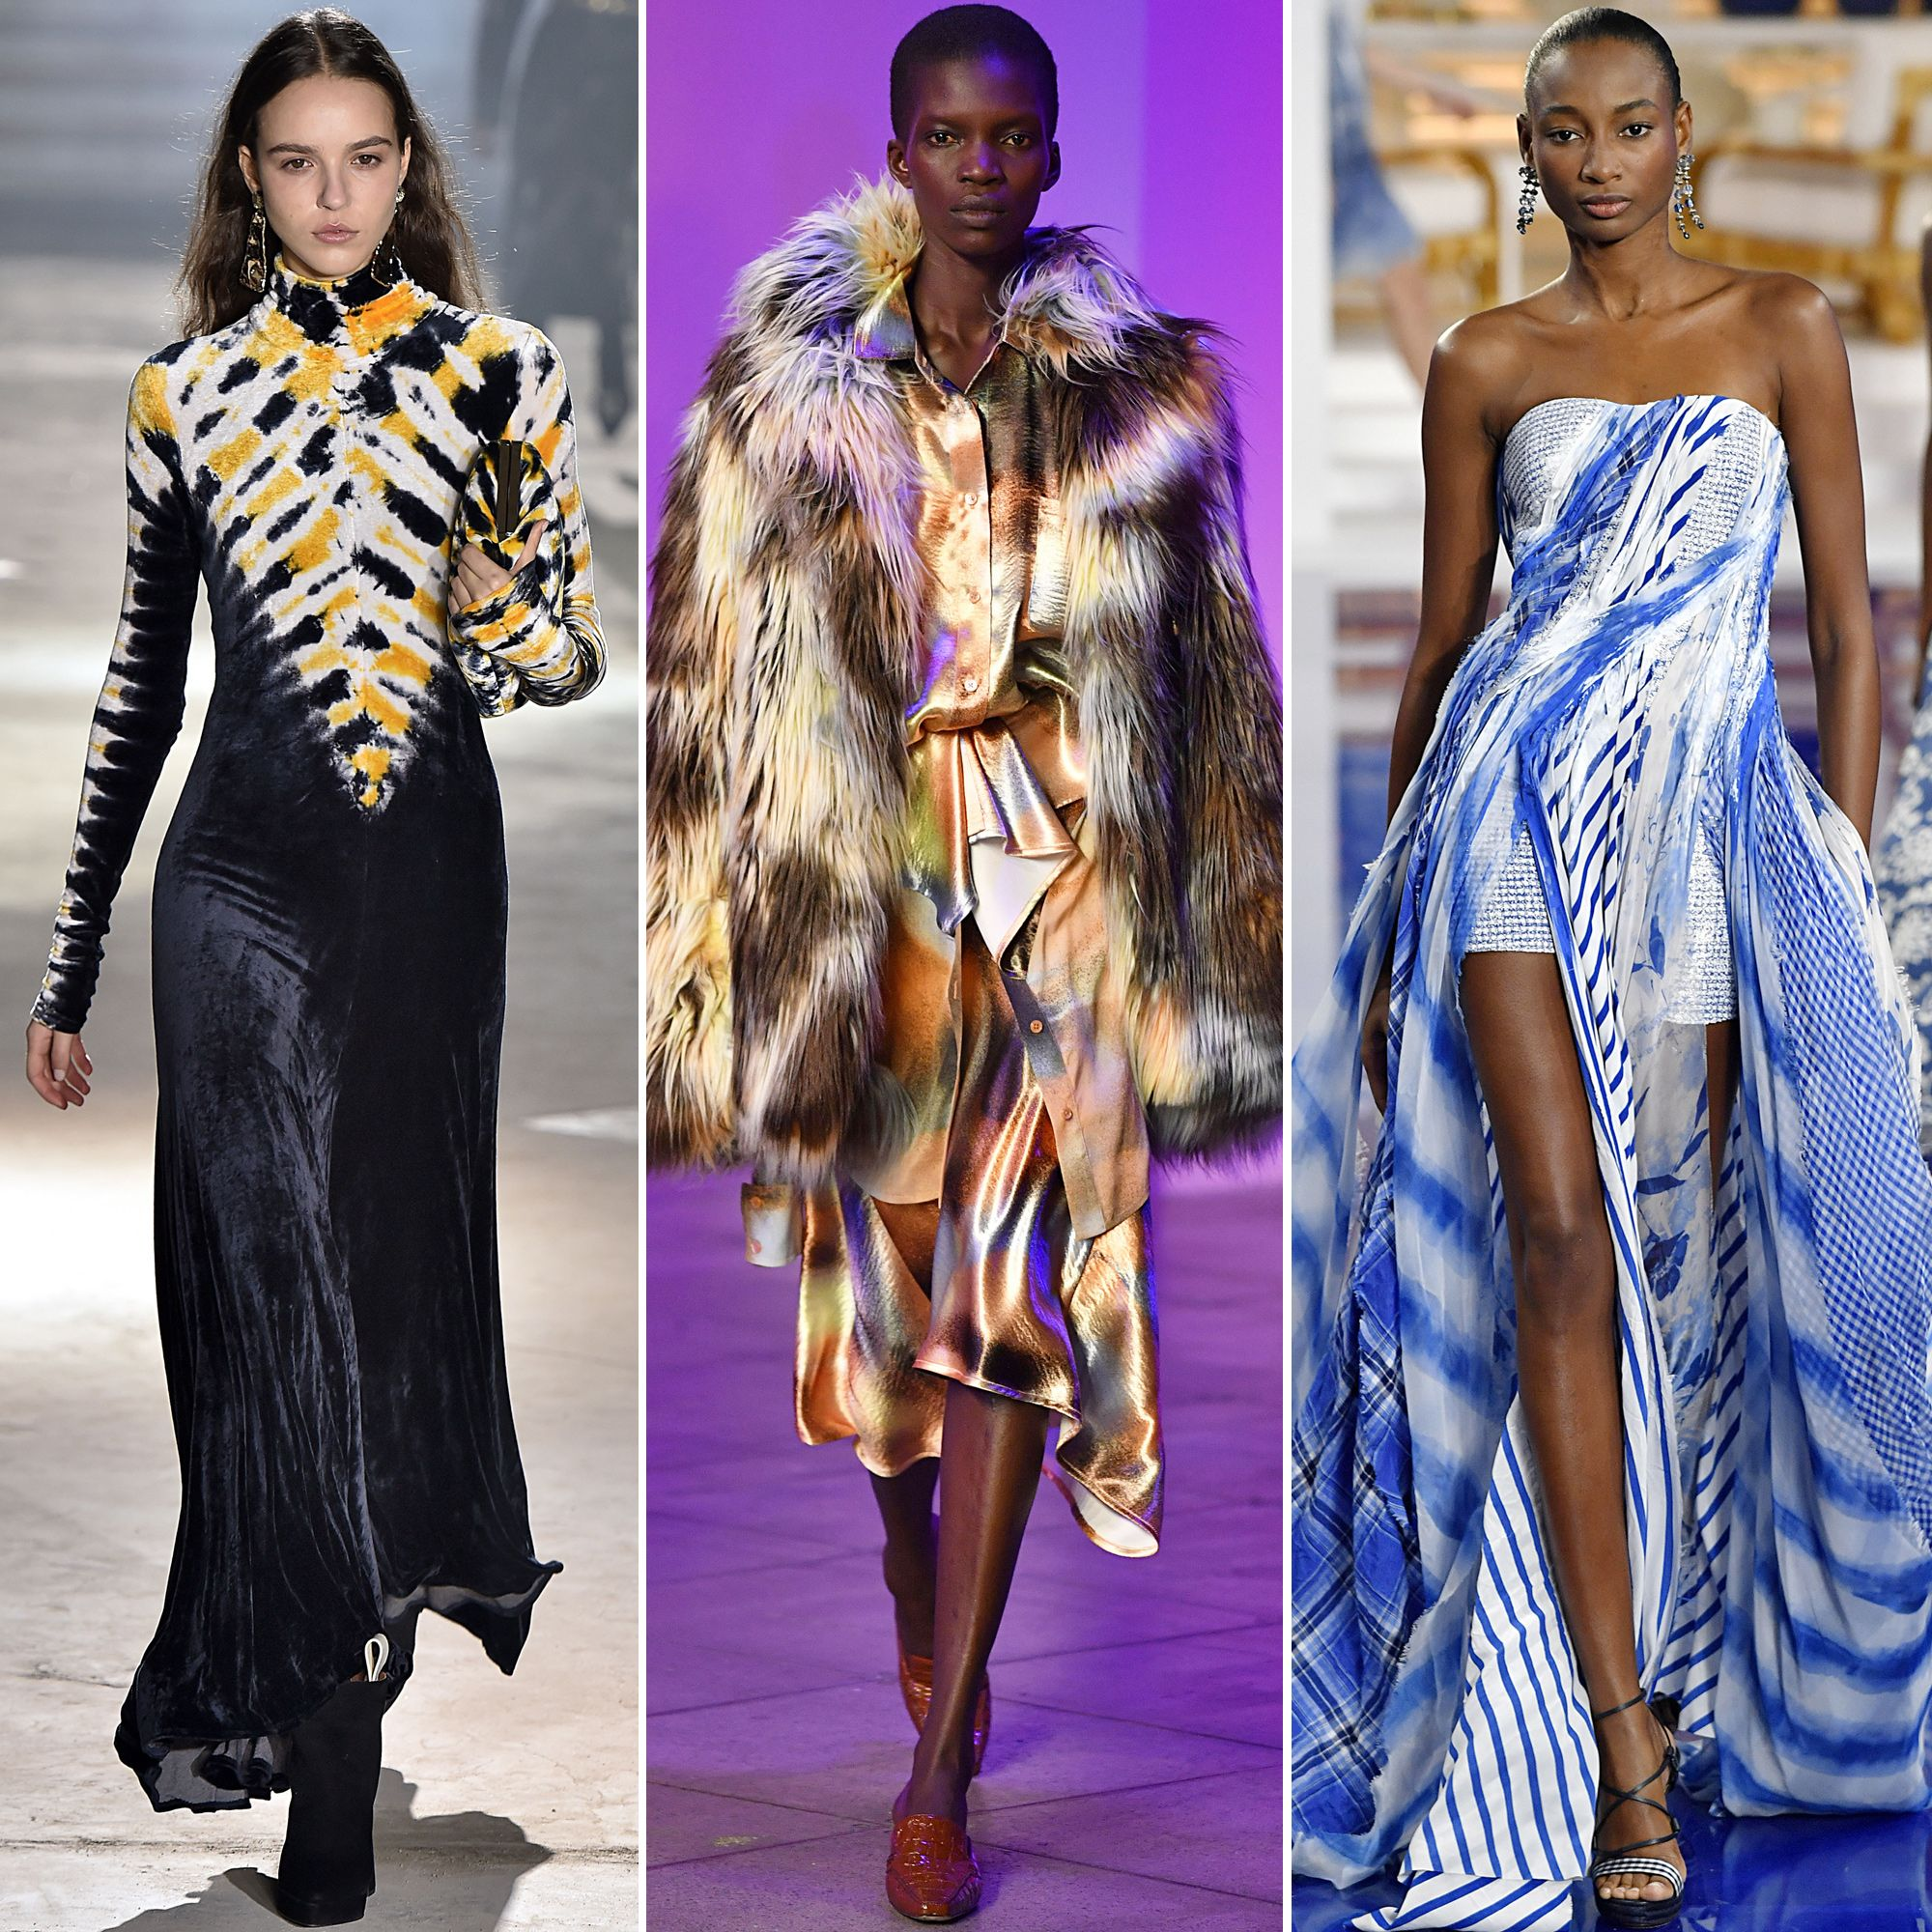 967d4d644fbc85 The Stand Out Trends From New York Fashion Week  Fall 2018 - Tie-Dye from  InStyle.com